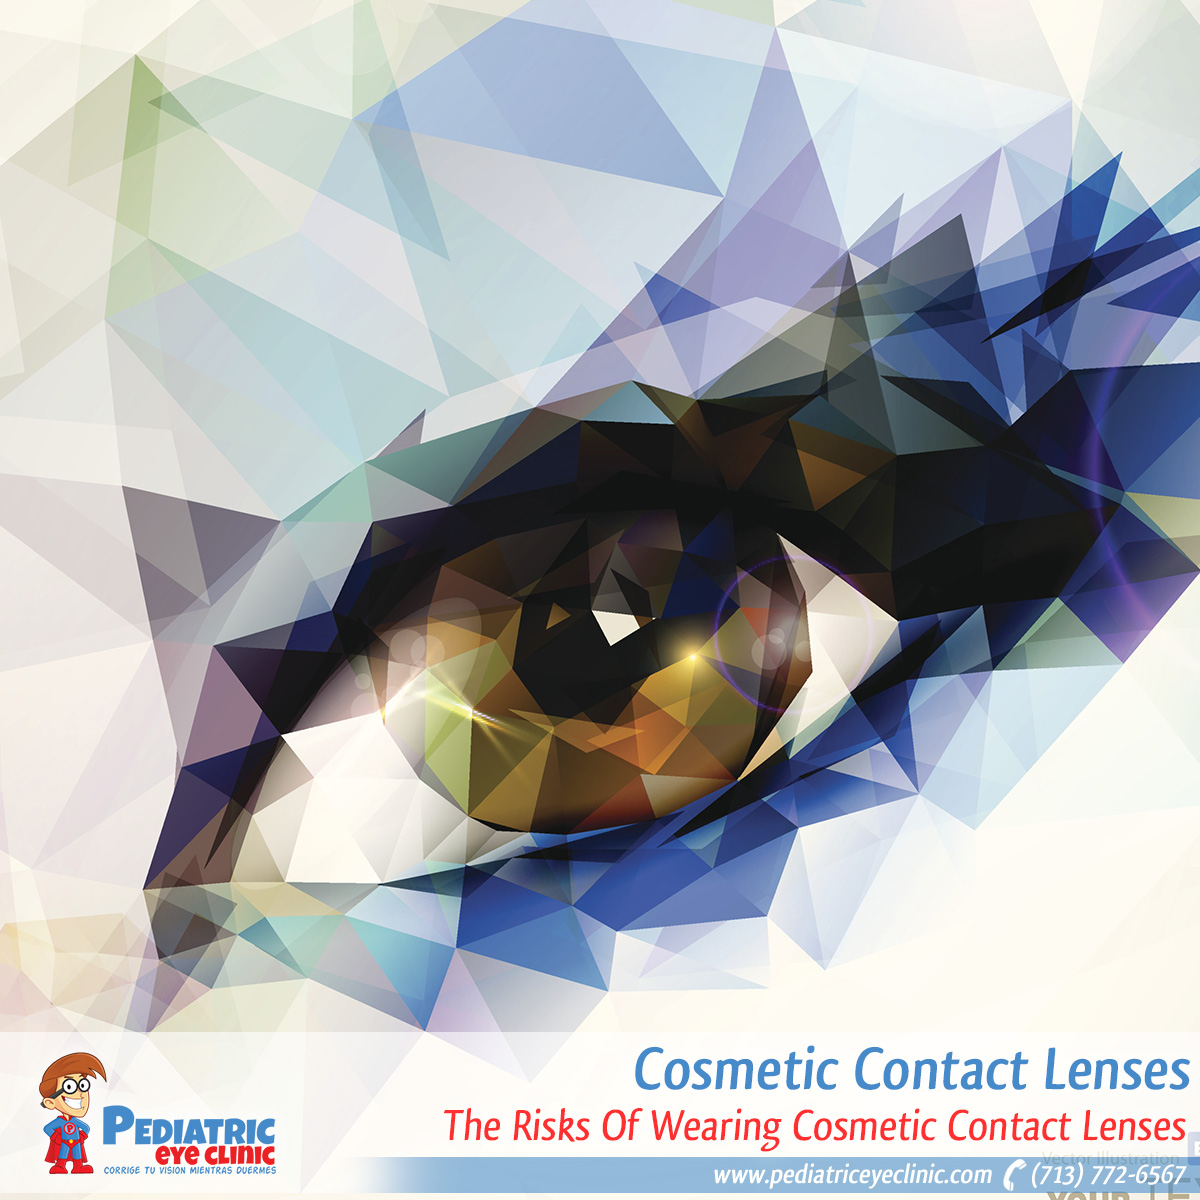 32 Decorative Contact Lenses